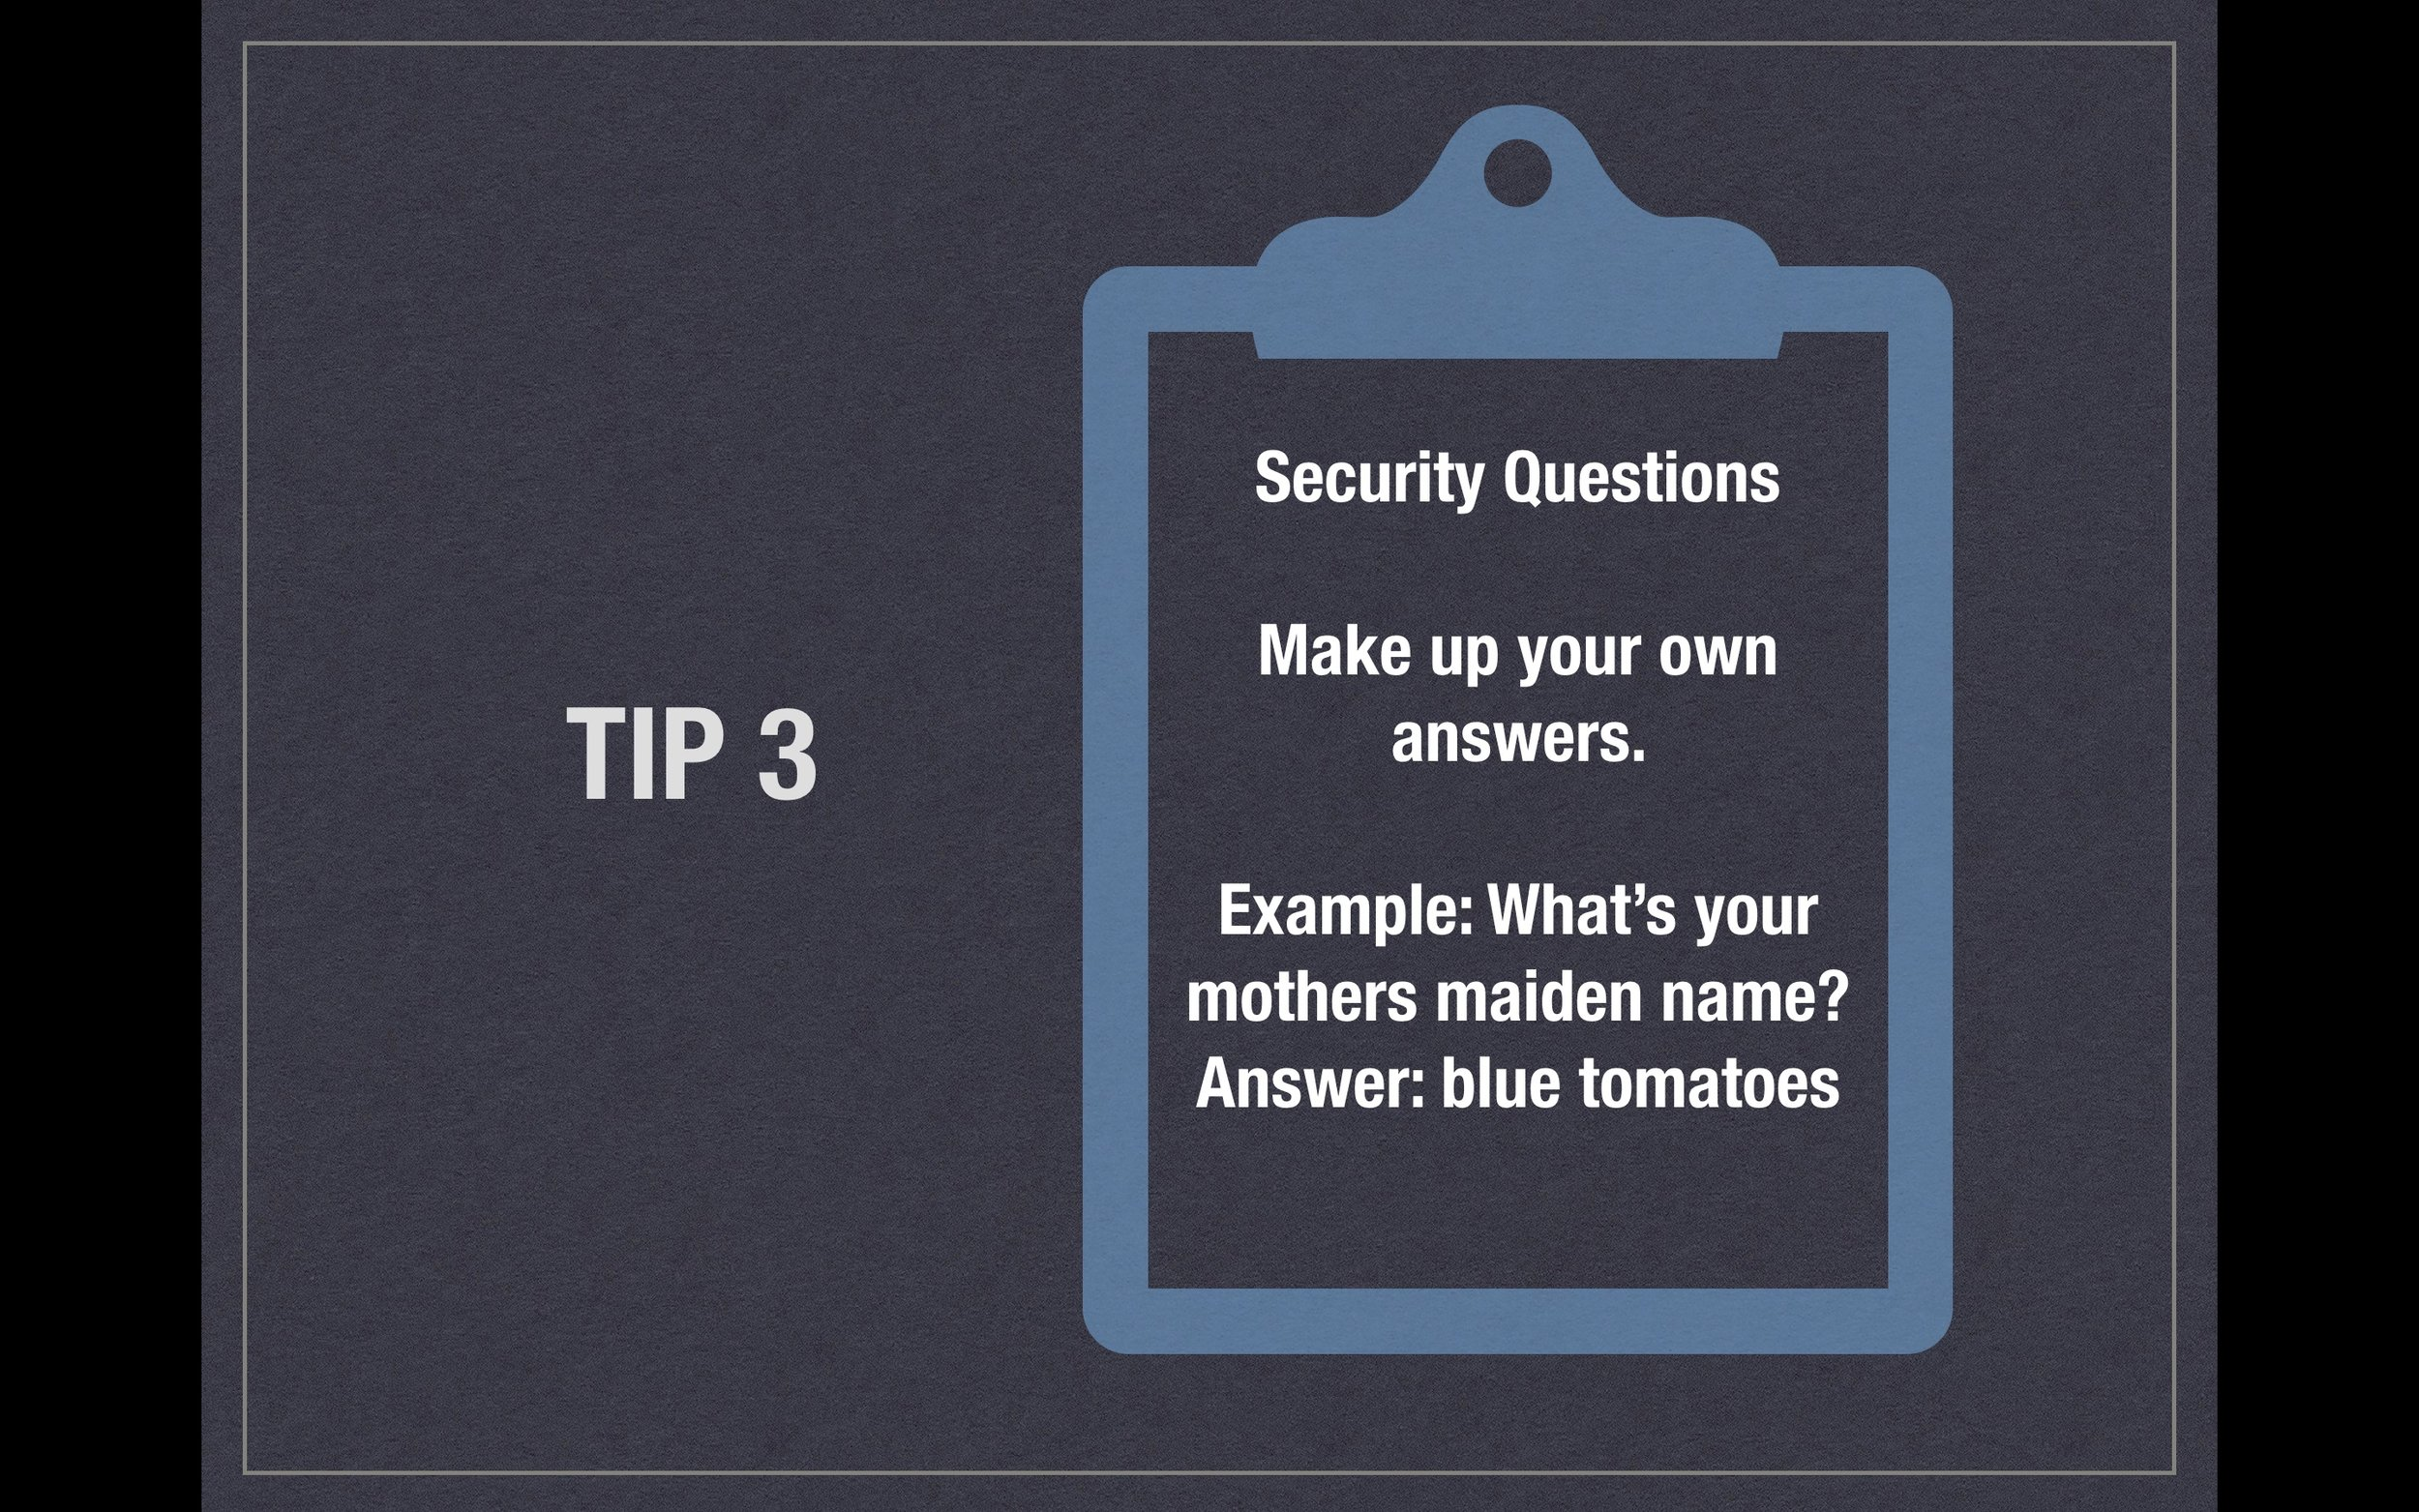 Tip 3 - Security Questions - Make up your own answers. Example; What's your mother's maiden name? Answer: blue tomatoes